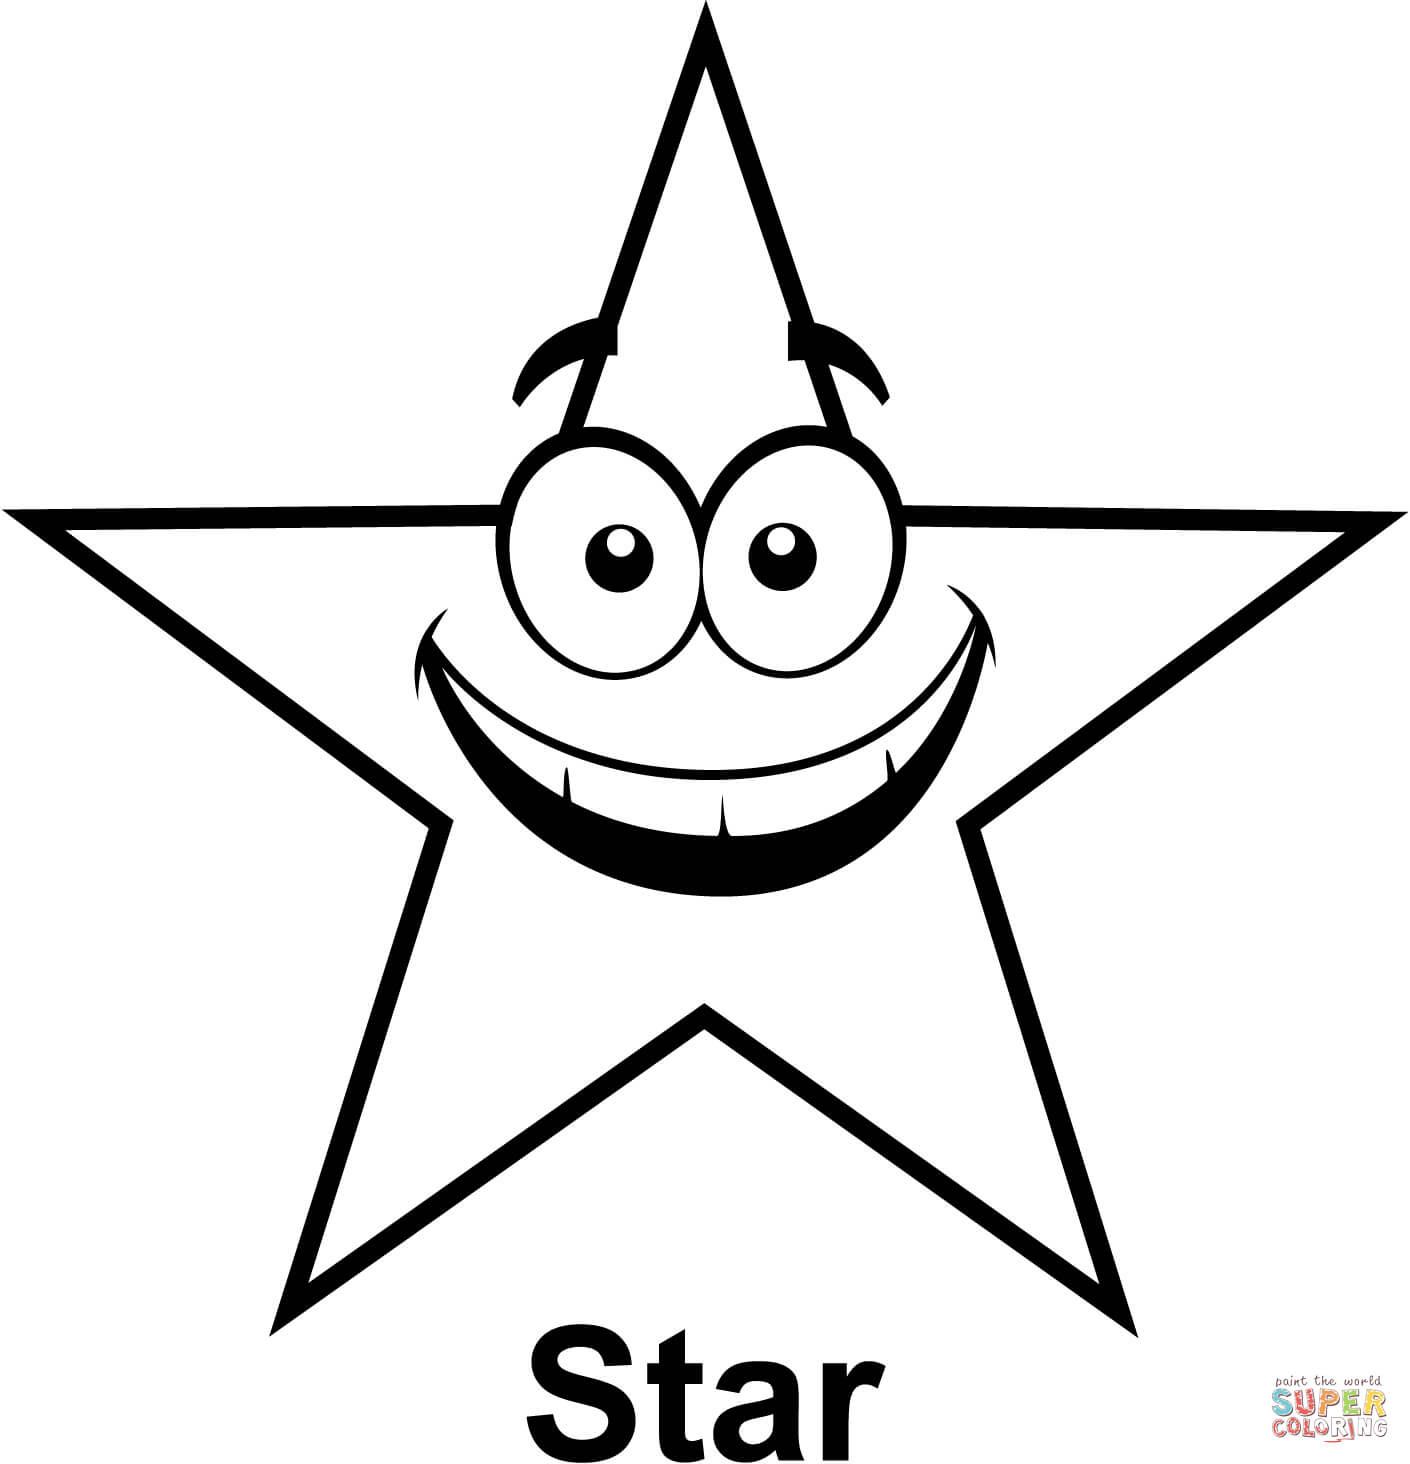 colouring pages of stars star coloring download star coloring for free 2019 pages colouring of stars